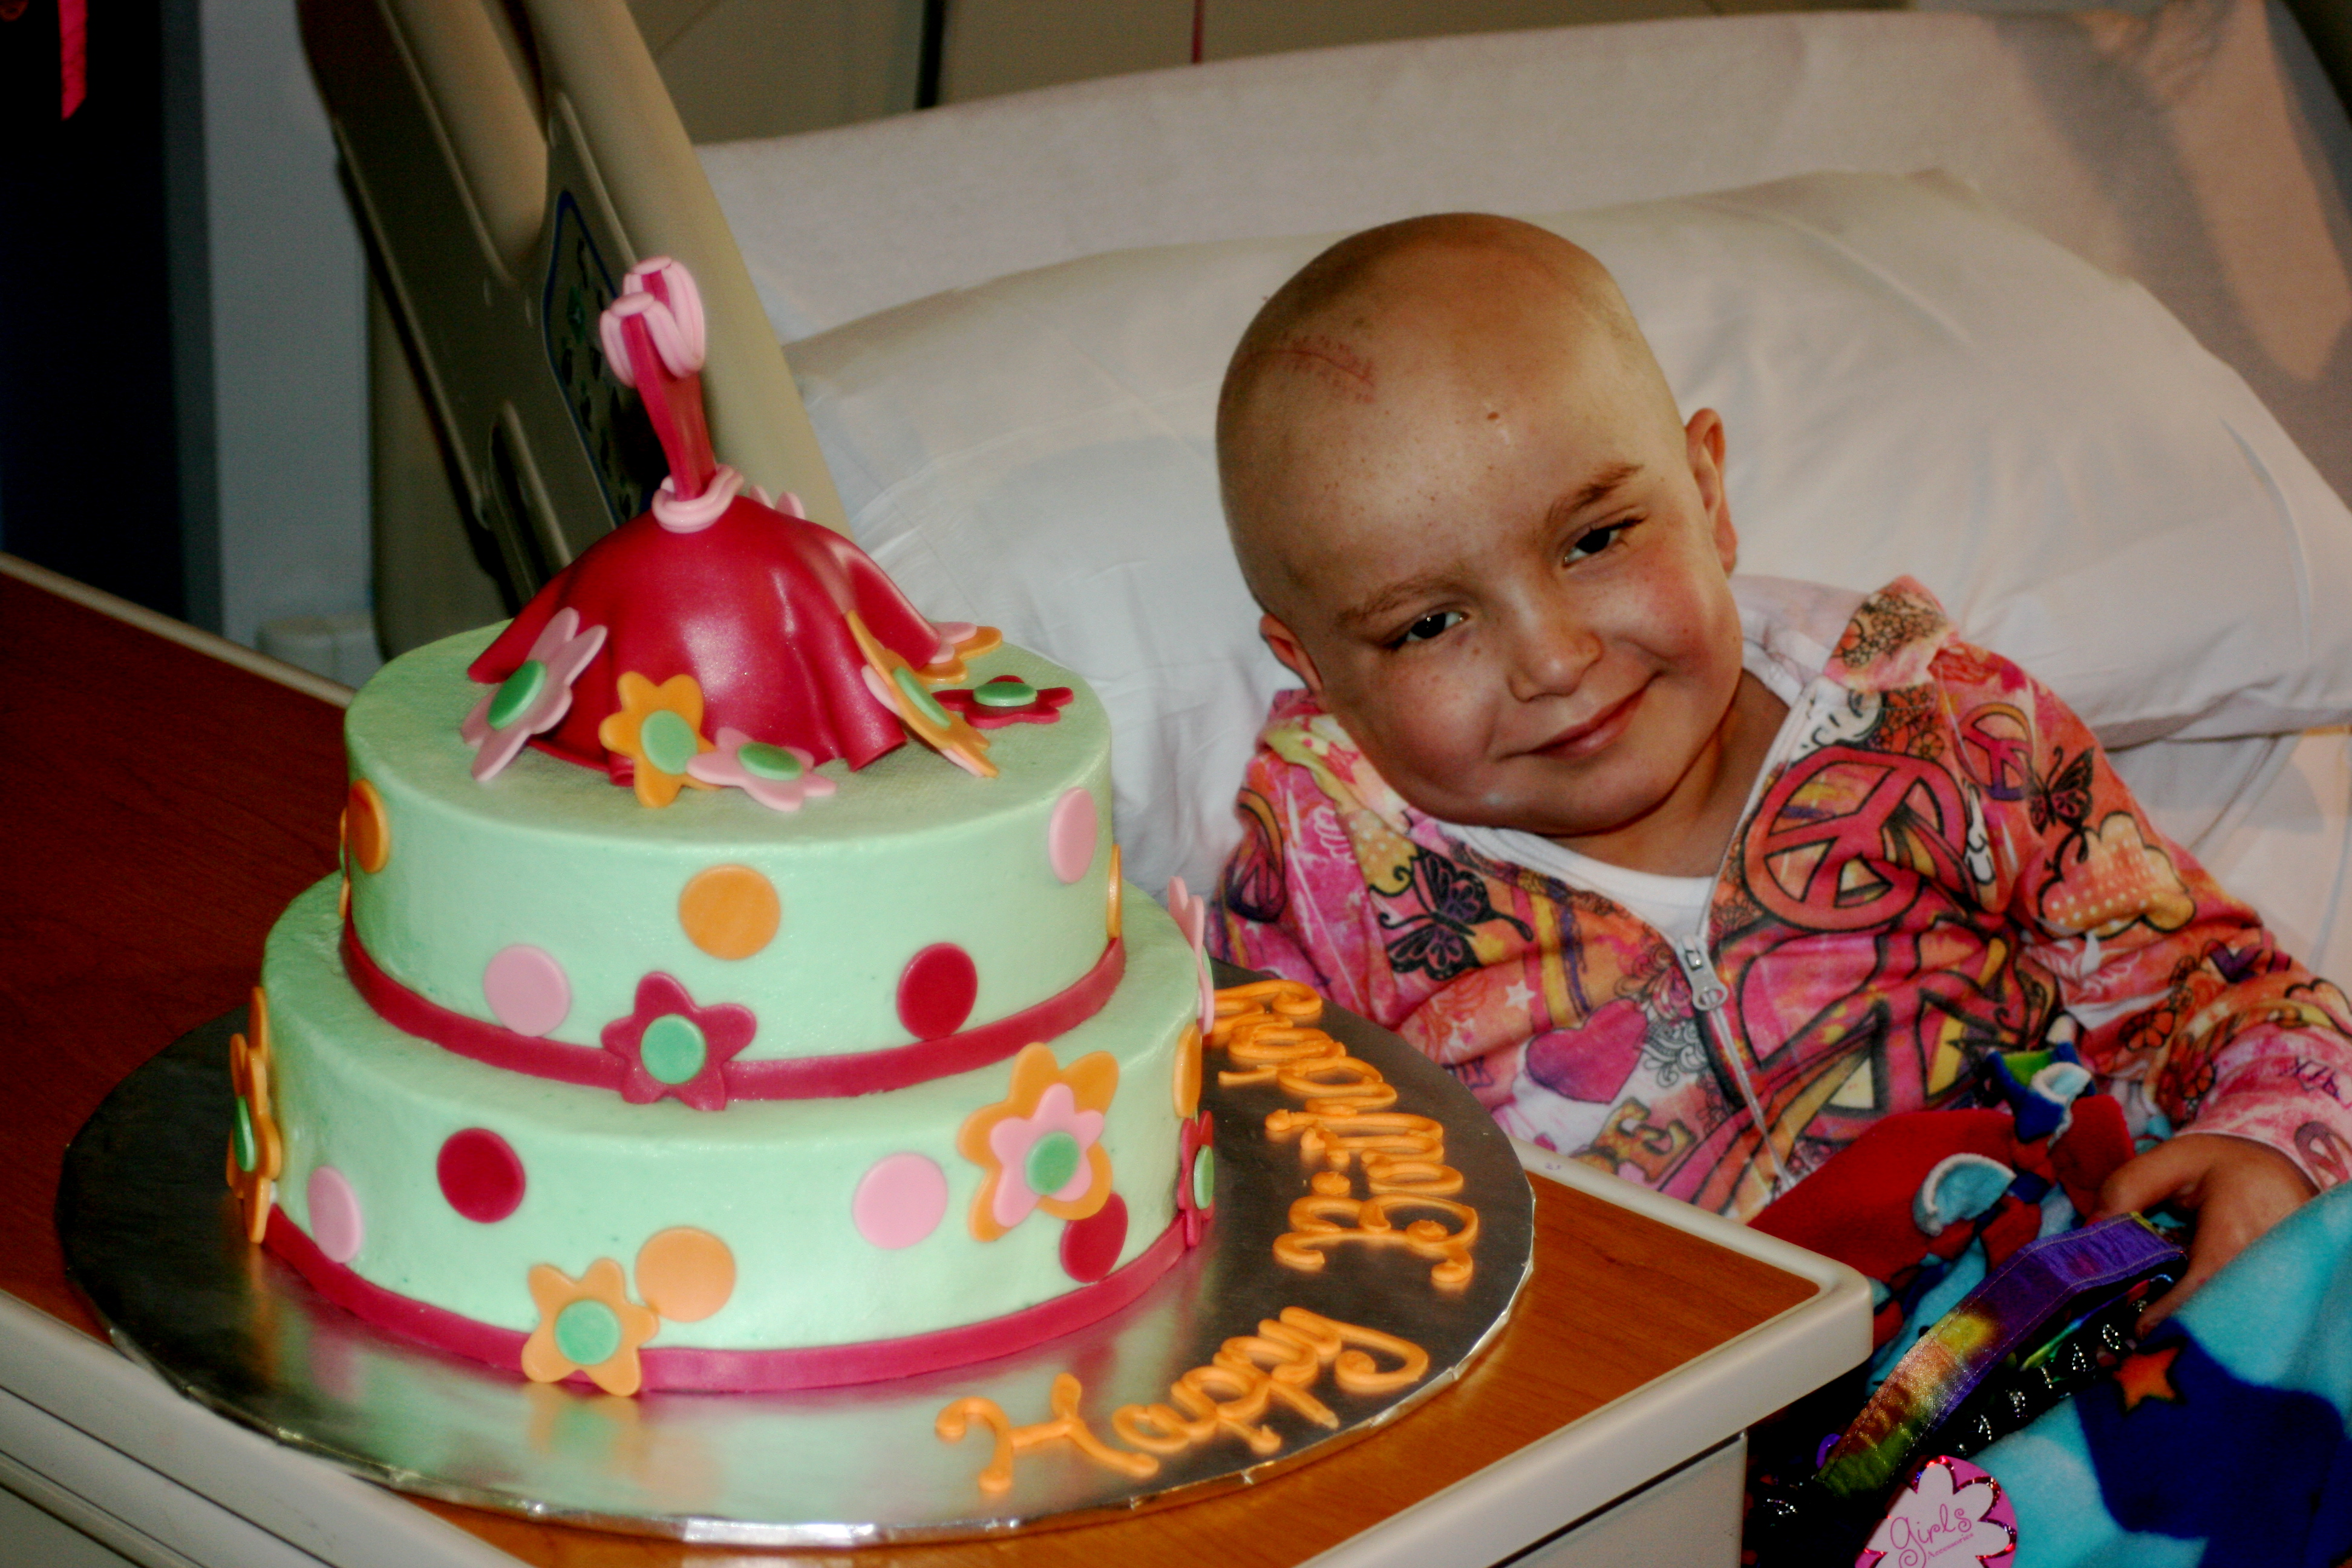 Spreading smiles to sick and siblings, 1 cake at a time